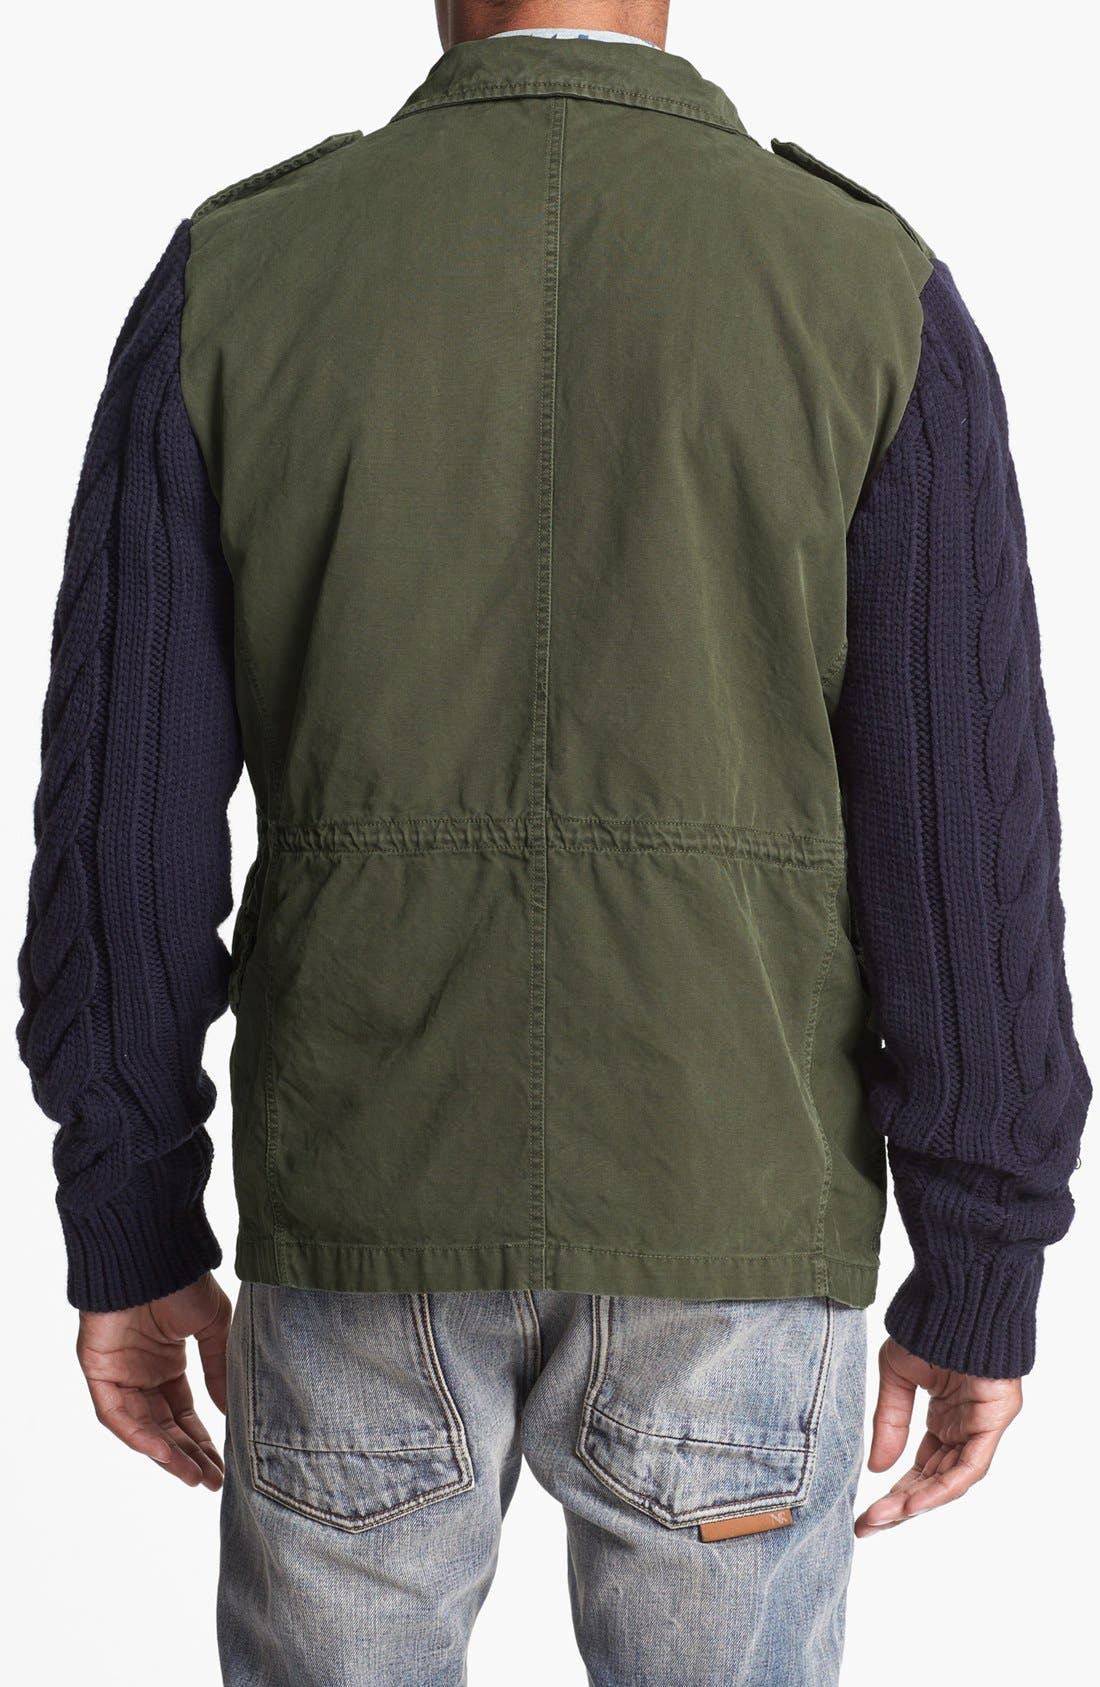 Alternate Image 2  - Scotch & Soda Military Jacket with Knit Sleeves